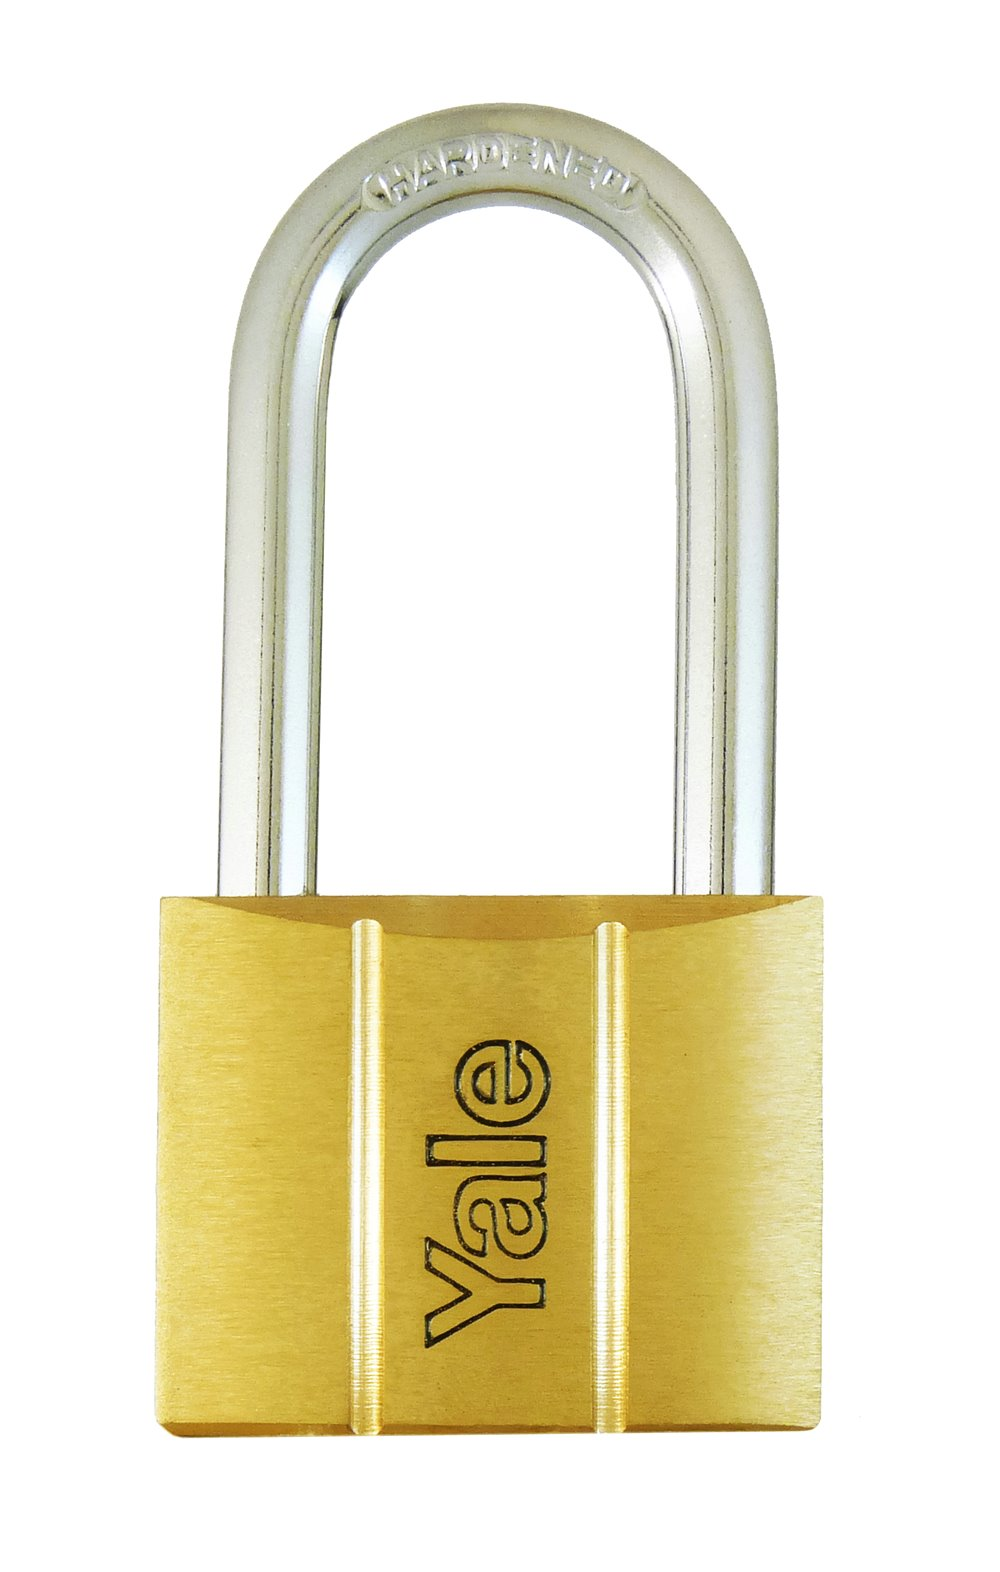 Y140/40LS - Yale 140 Series Long Shackle Brass Padlock 40mm